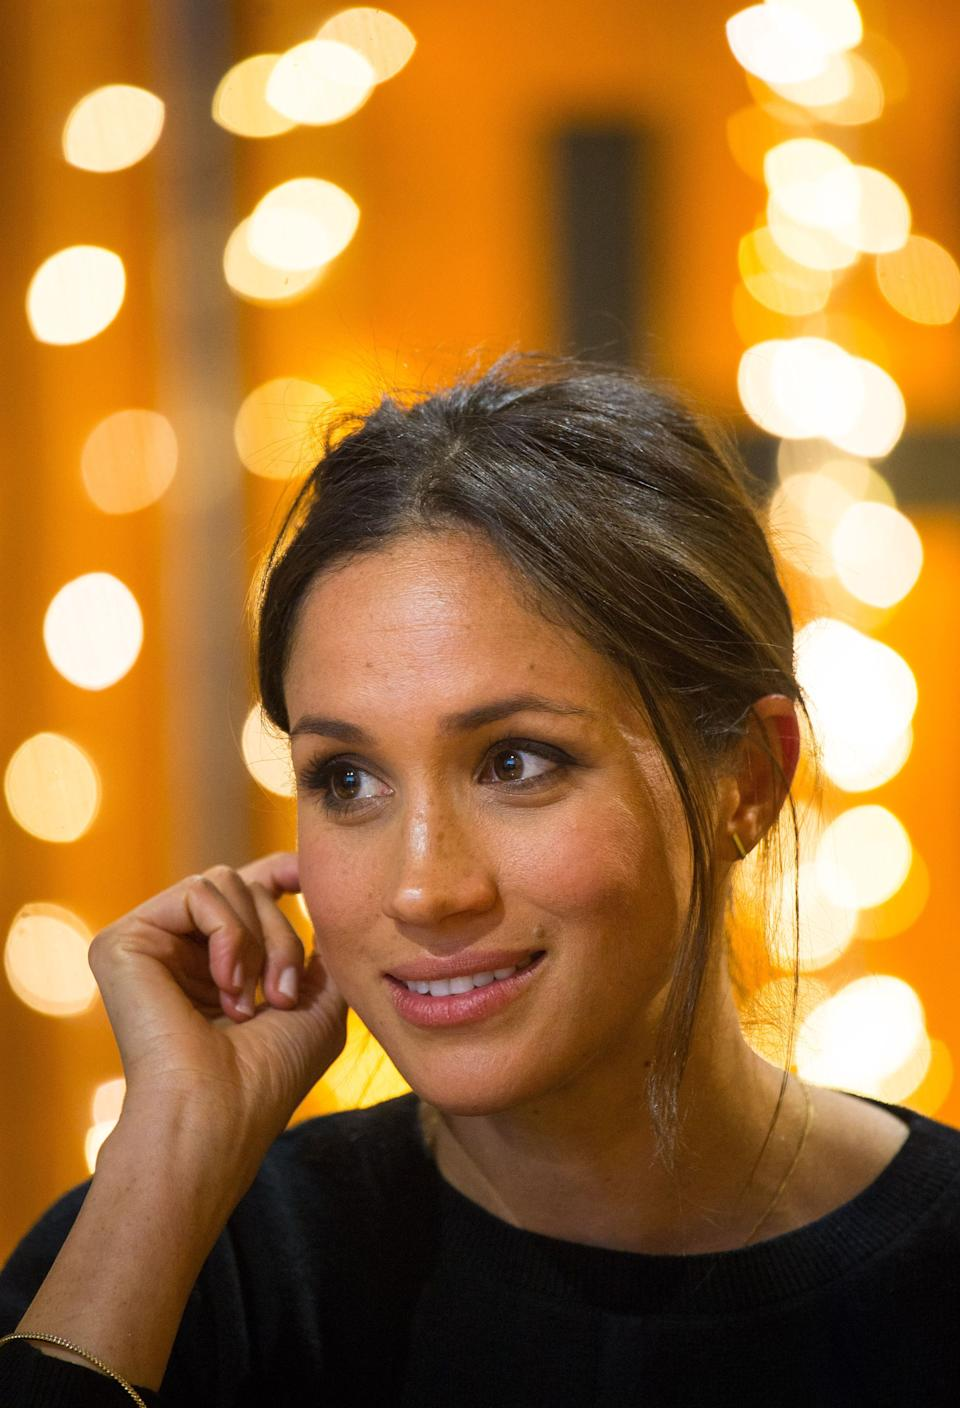 Britain's Prince Harry's fiancée, US actress Meghan Markle gestures during a visit to Reprezent 107.3FM community radio station in Brixton, south west London on January 9, 2018.   During their visit to the station, they met some of the presenters, content producers and staff, heard more about their training programmes, and met some of the current and former volunteers who have benefitted from the training. / AFP PHOTO / POOL / Dominic Lipinski        (Photo credit should read DOMINIC LIPINSKI/AFP via Getty Images)